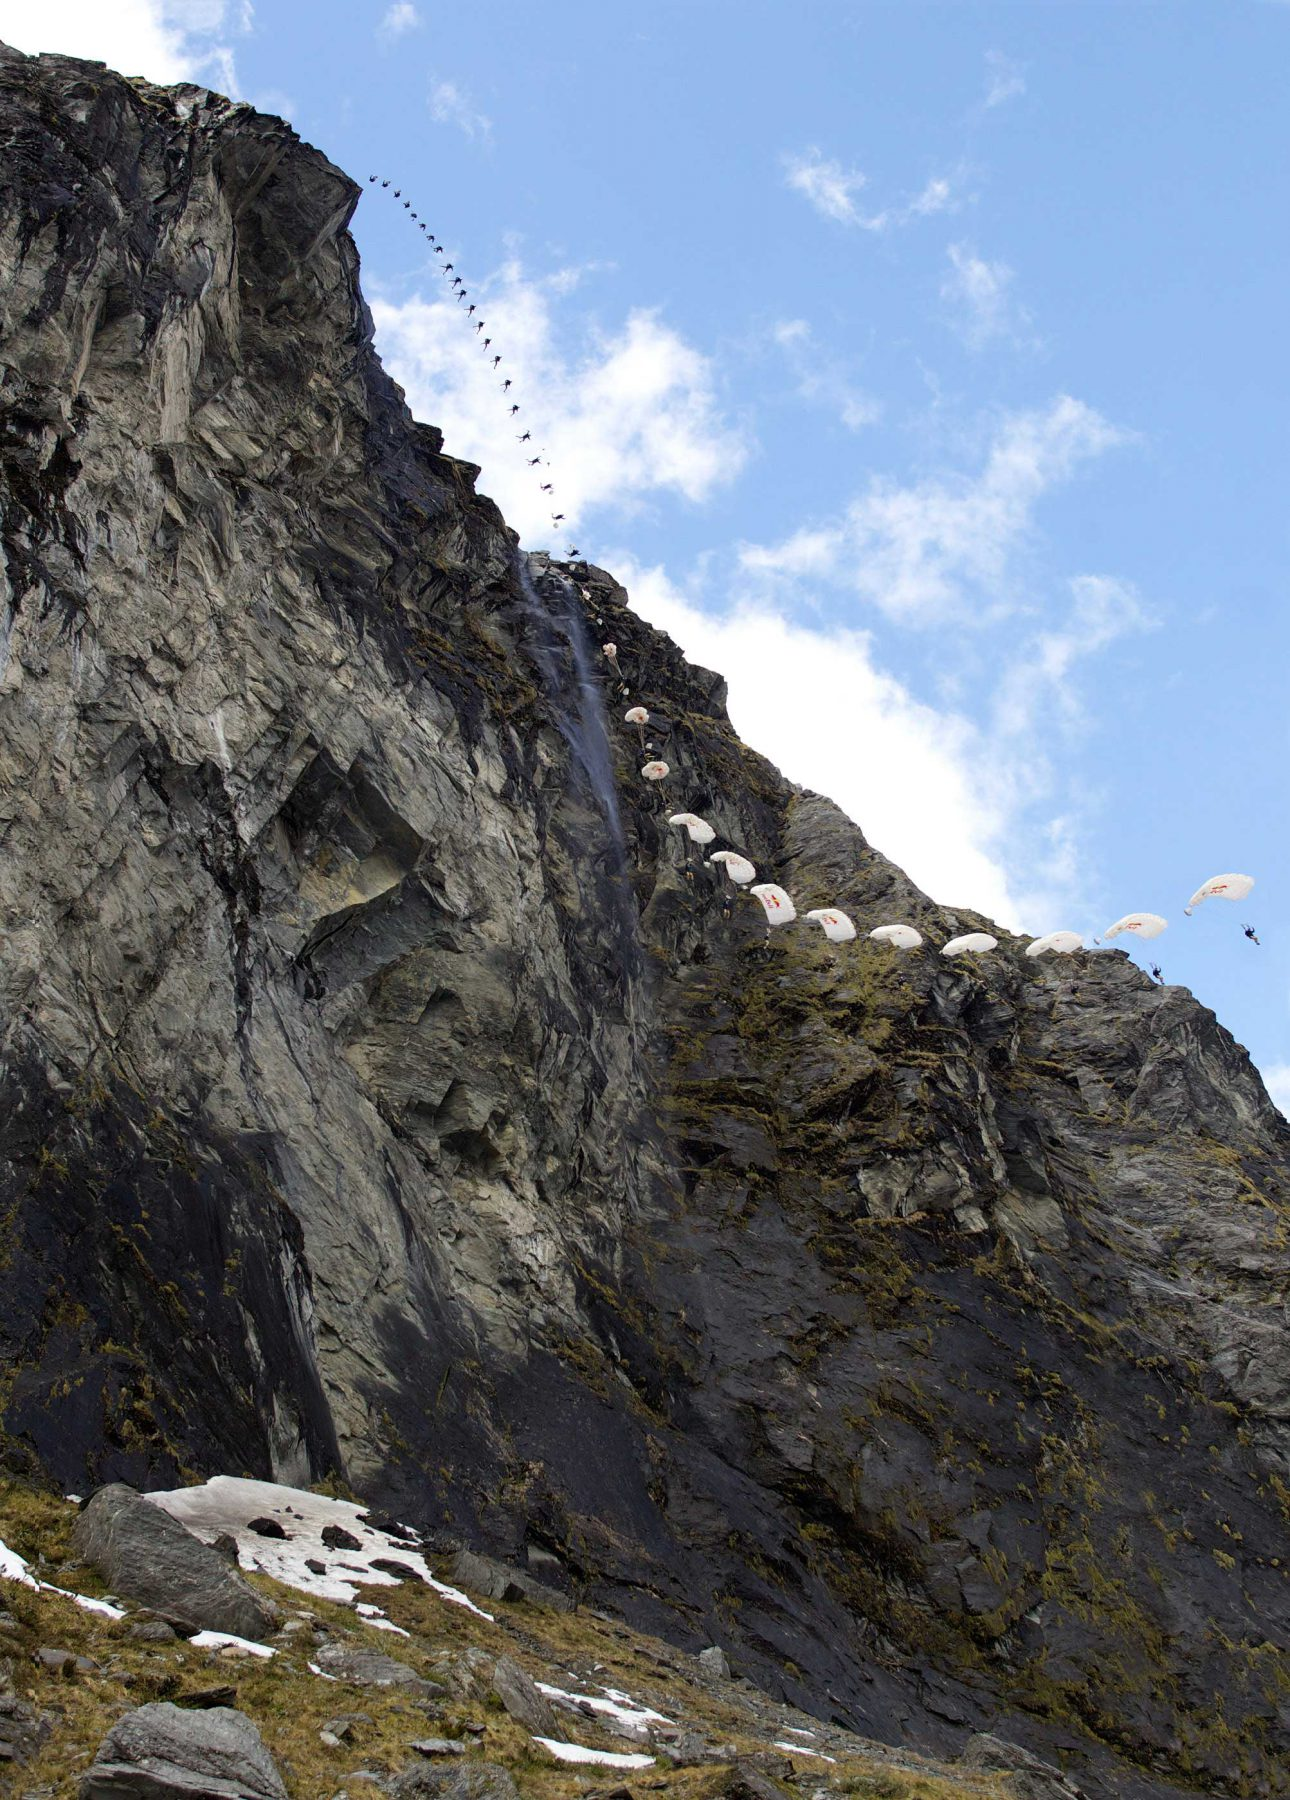 A time-lapse sequence of a base jumper coming down a craggy mountain rangein Wanaka, New Zealand